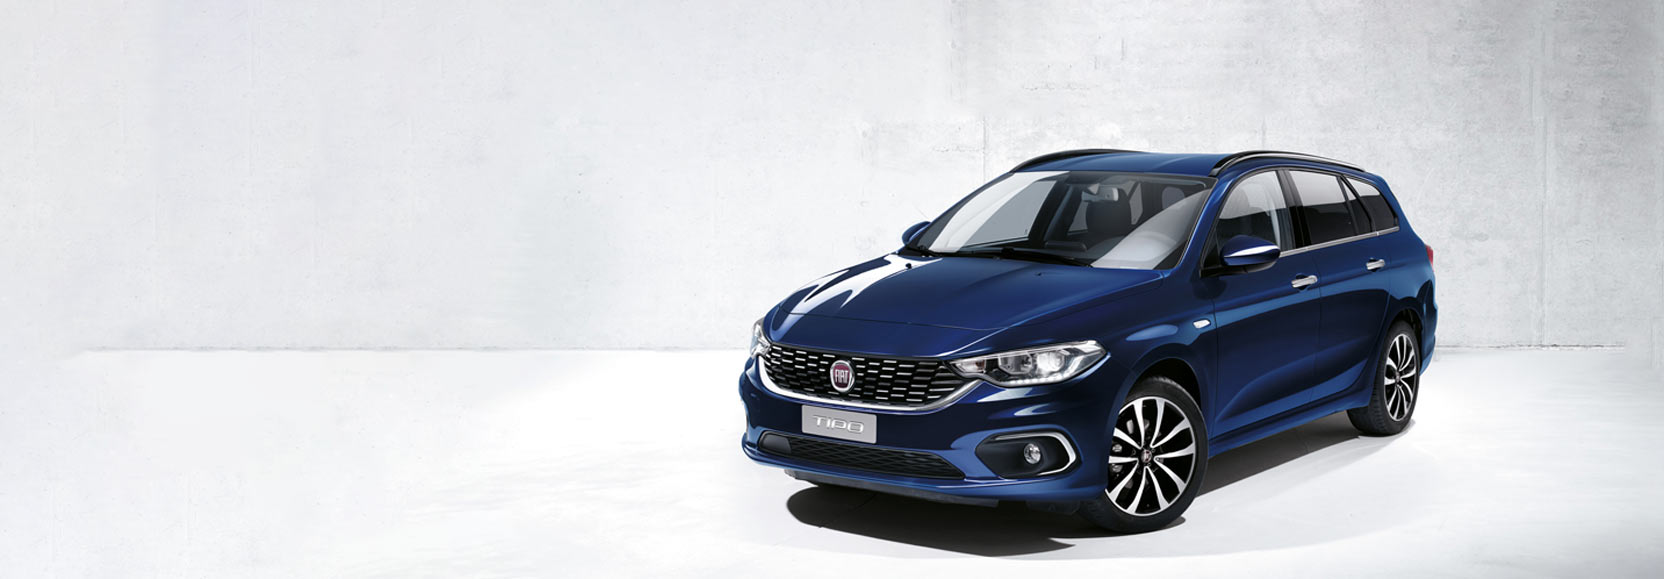 New Fiat Tipo SW